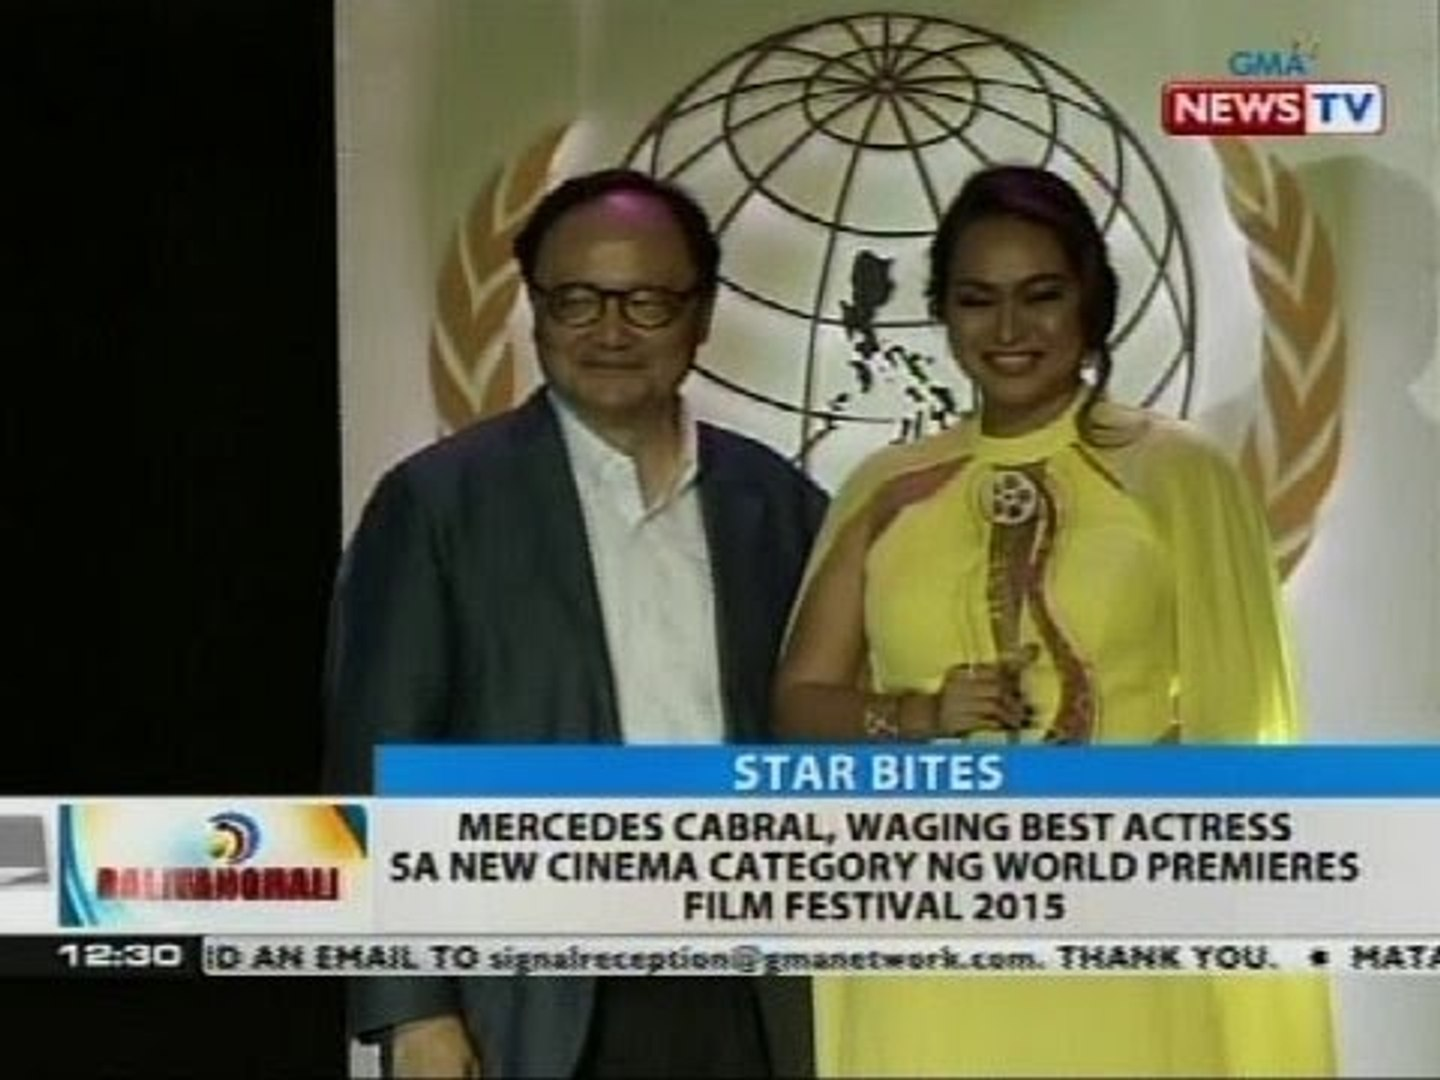 Mercedes Cabral, waging best actress sa new cinema category ng World Premieres Film Festival 2015